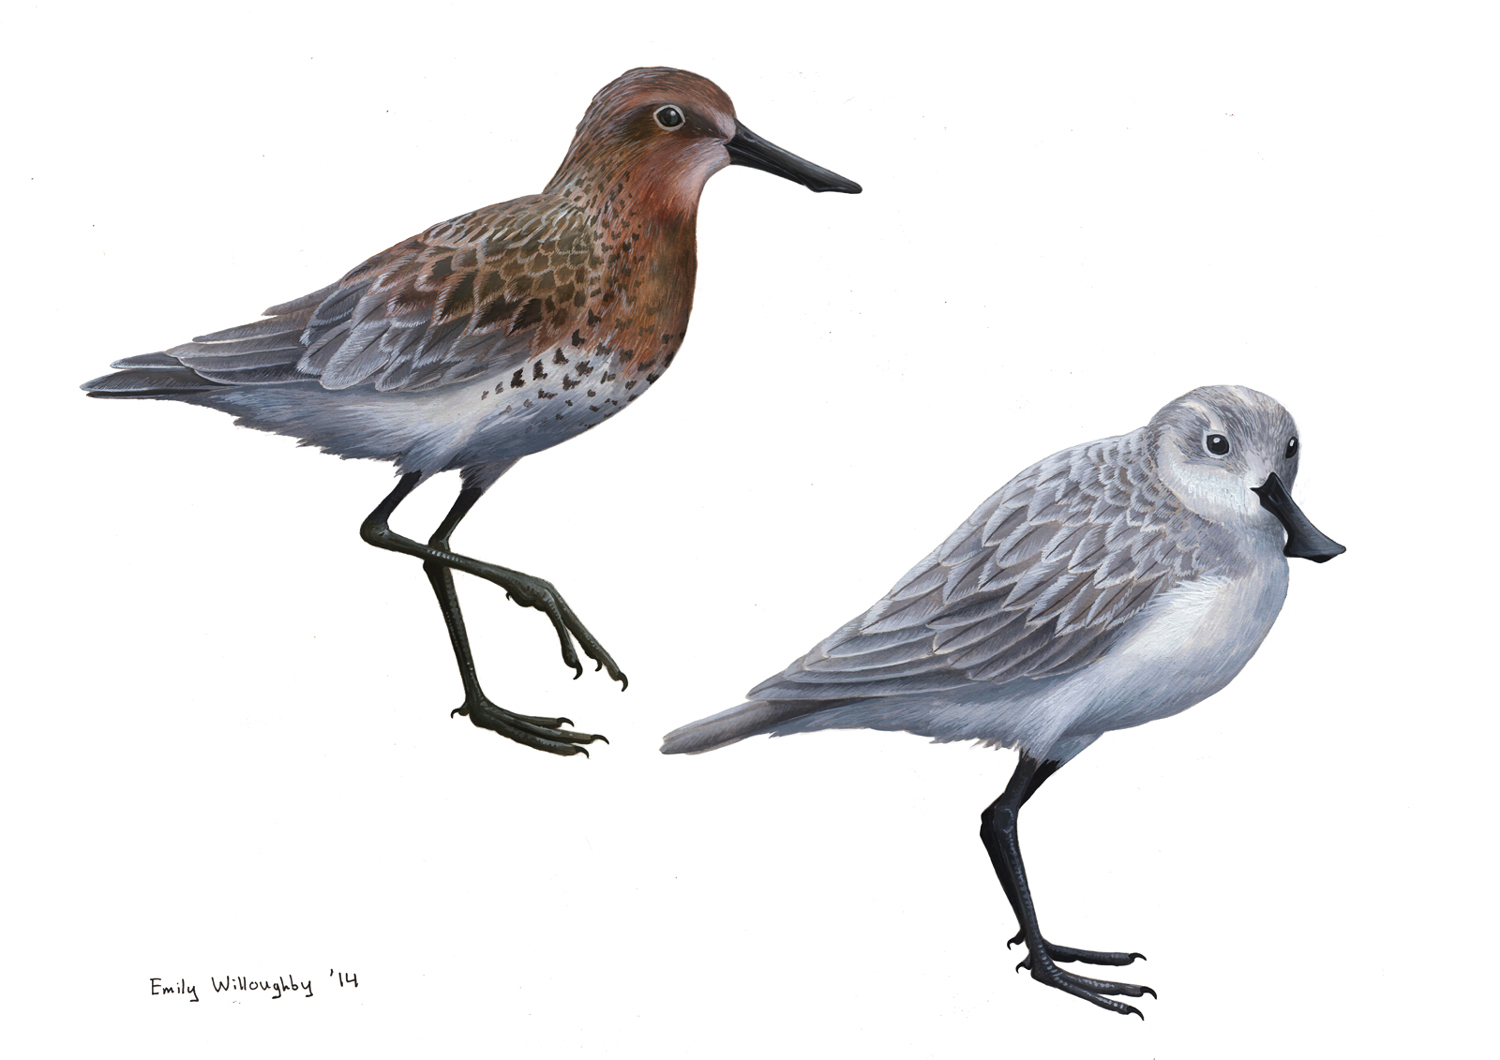 Spoon-billed Sandpiper Plumages